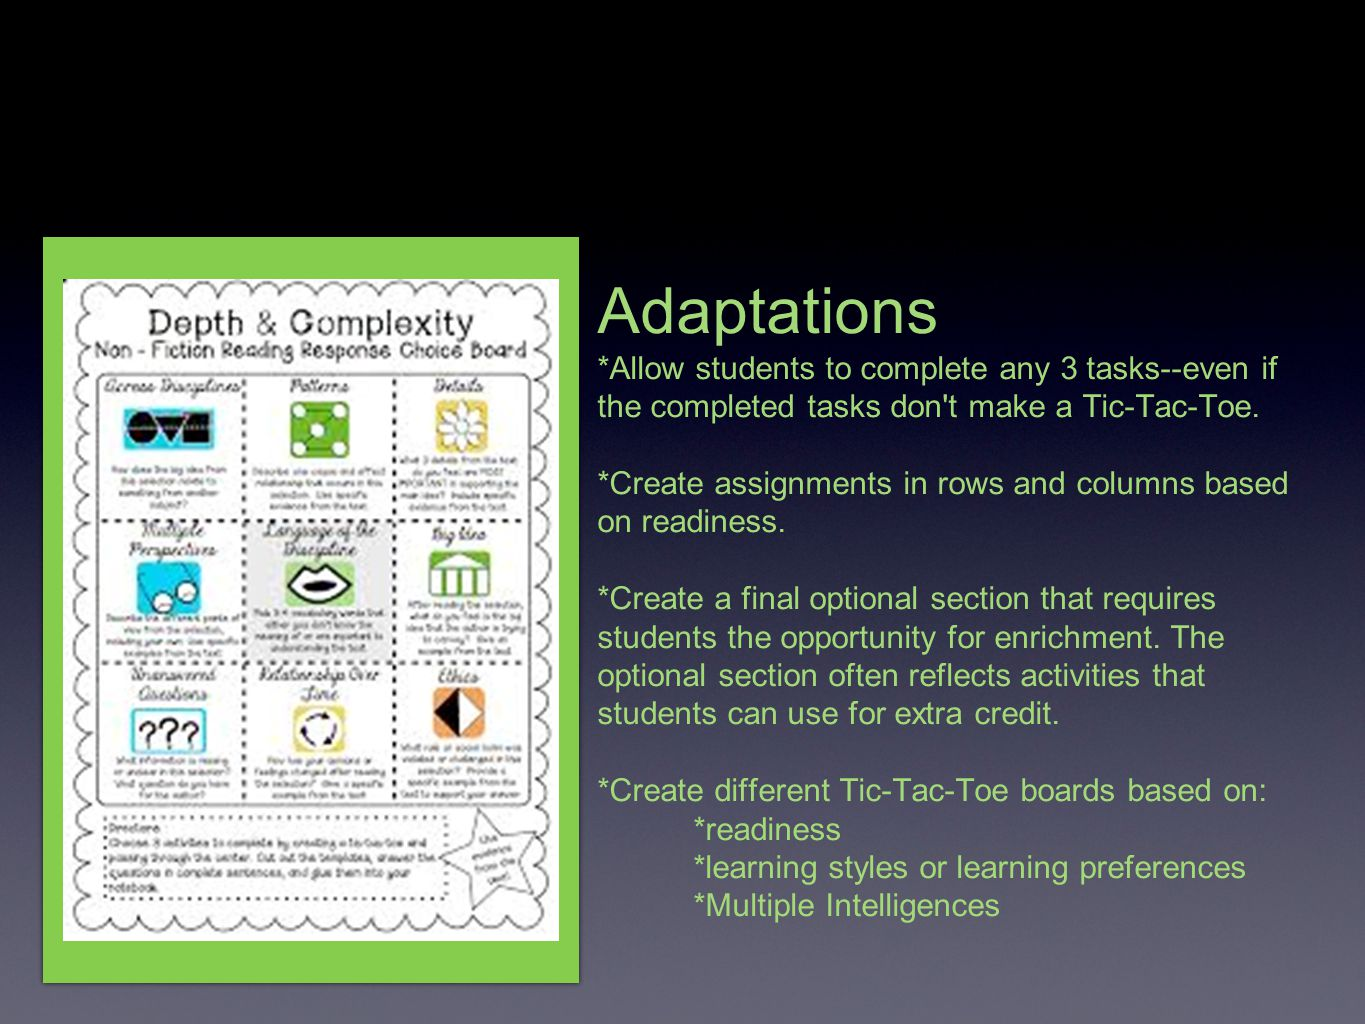 Adaptations *Allow students to complete any 3 tasks--even if the completed tasks don t make a Tic-Tac-Toe.